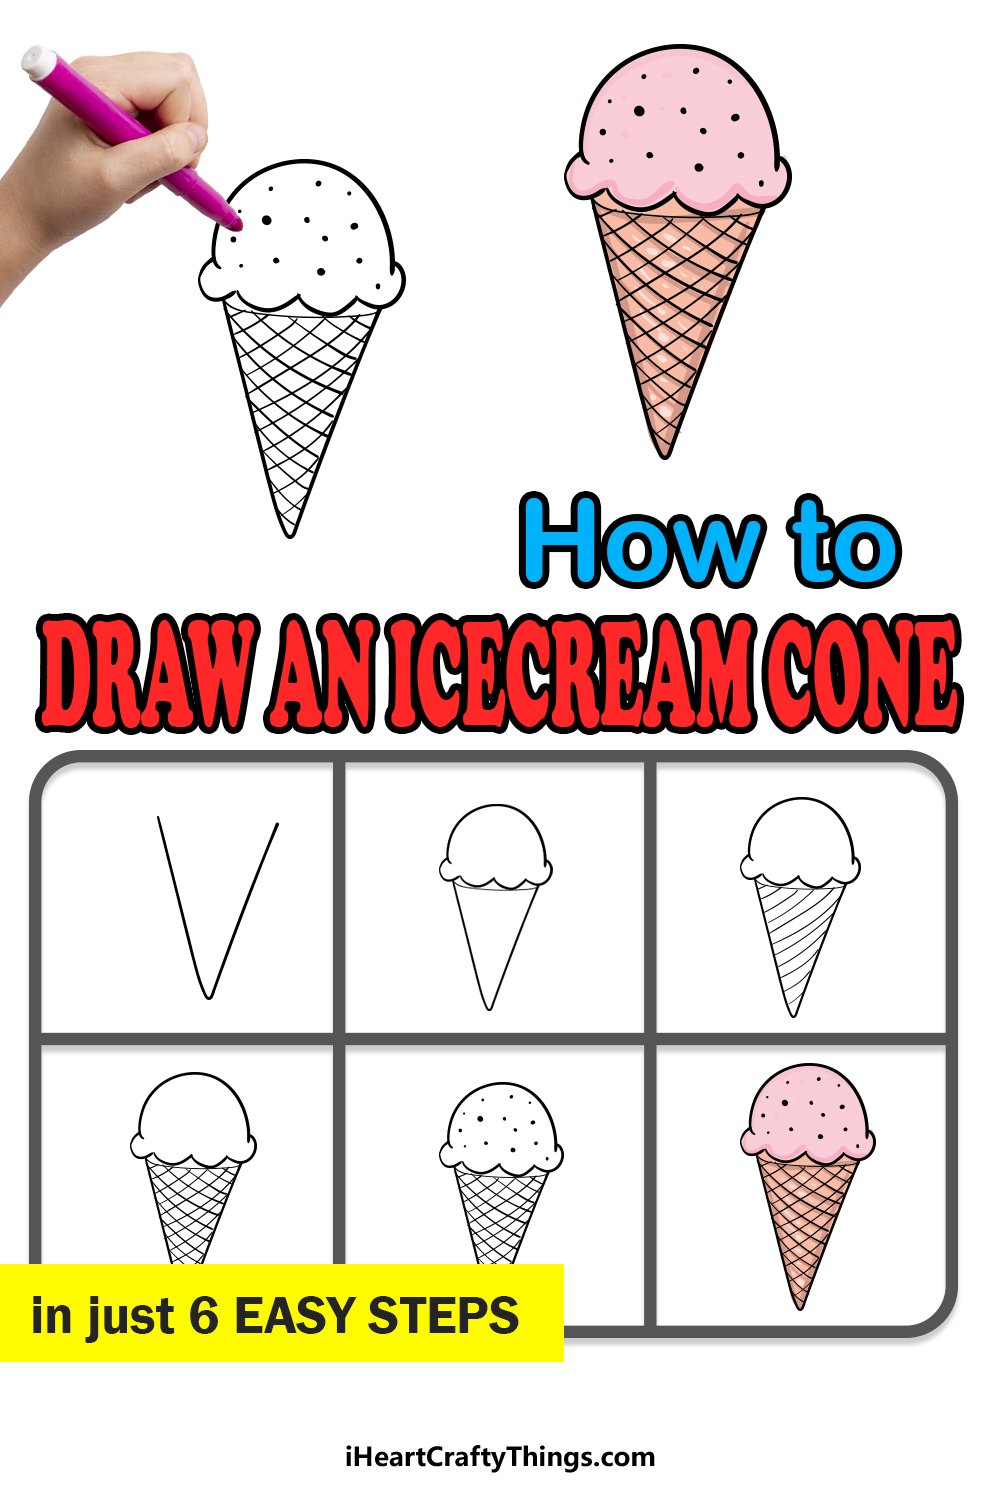 how to draw an ice cream cone in 6 easy steps